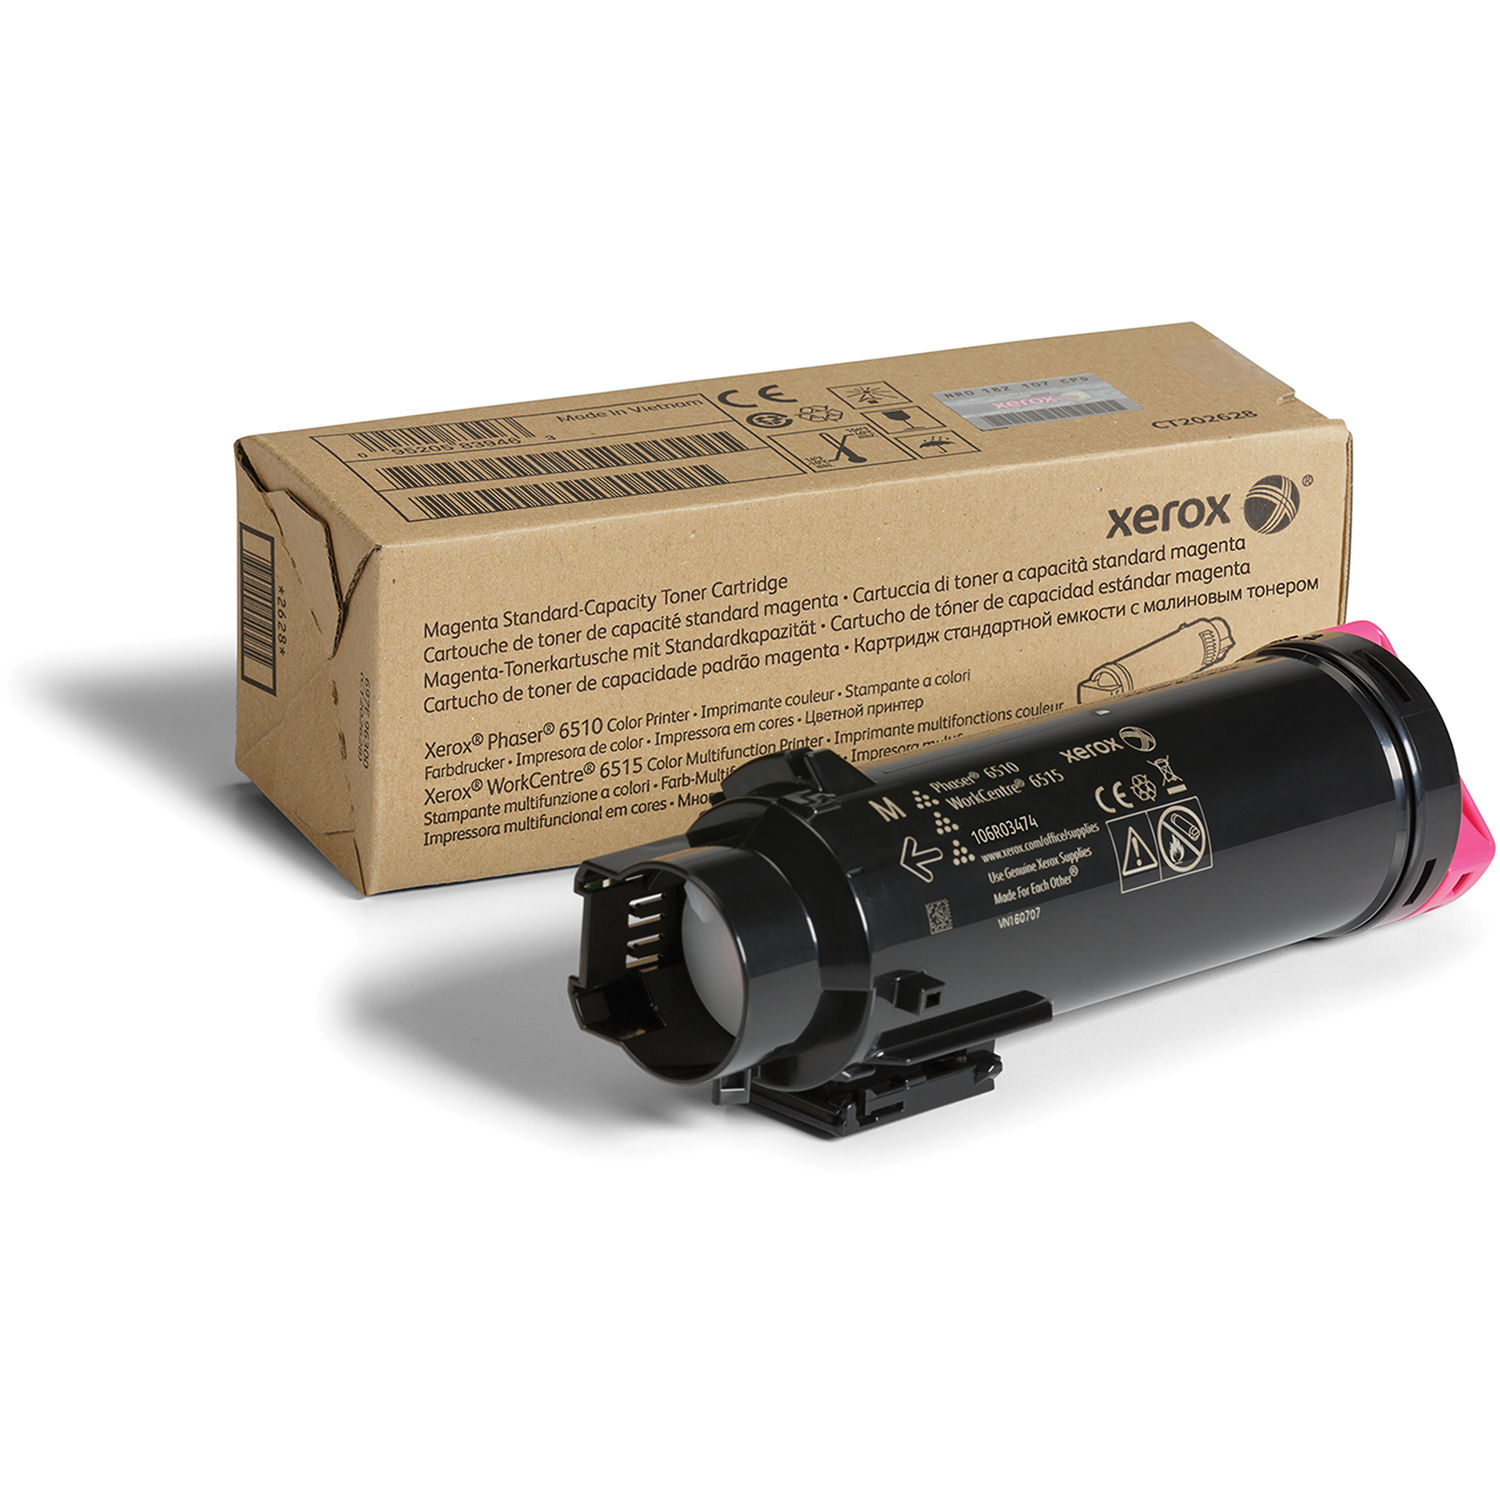 Xerox 106R03474 Toner Cartridge - Magenta